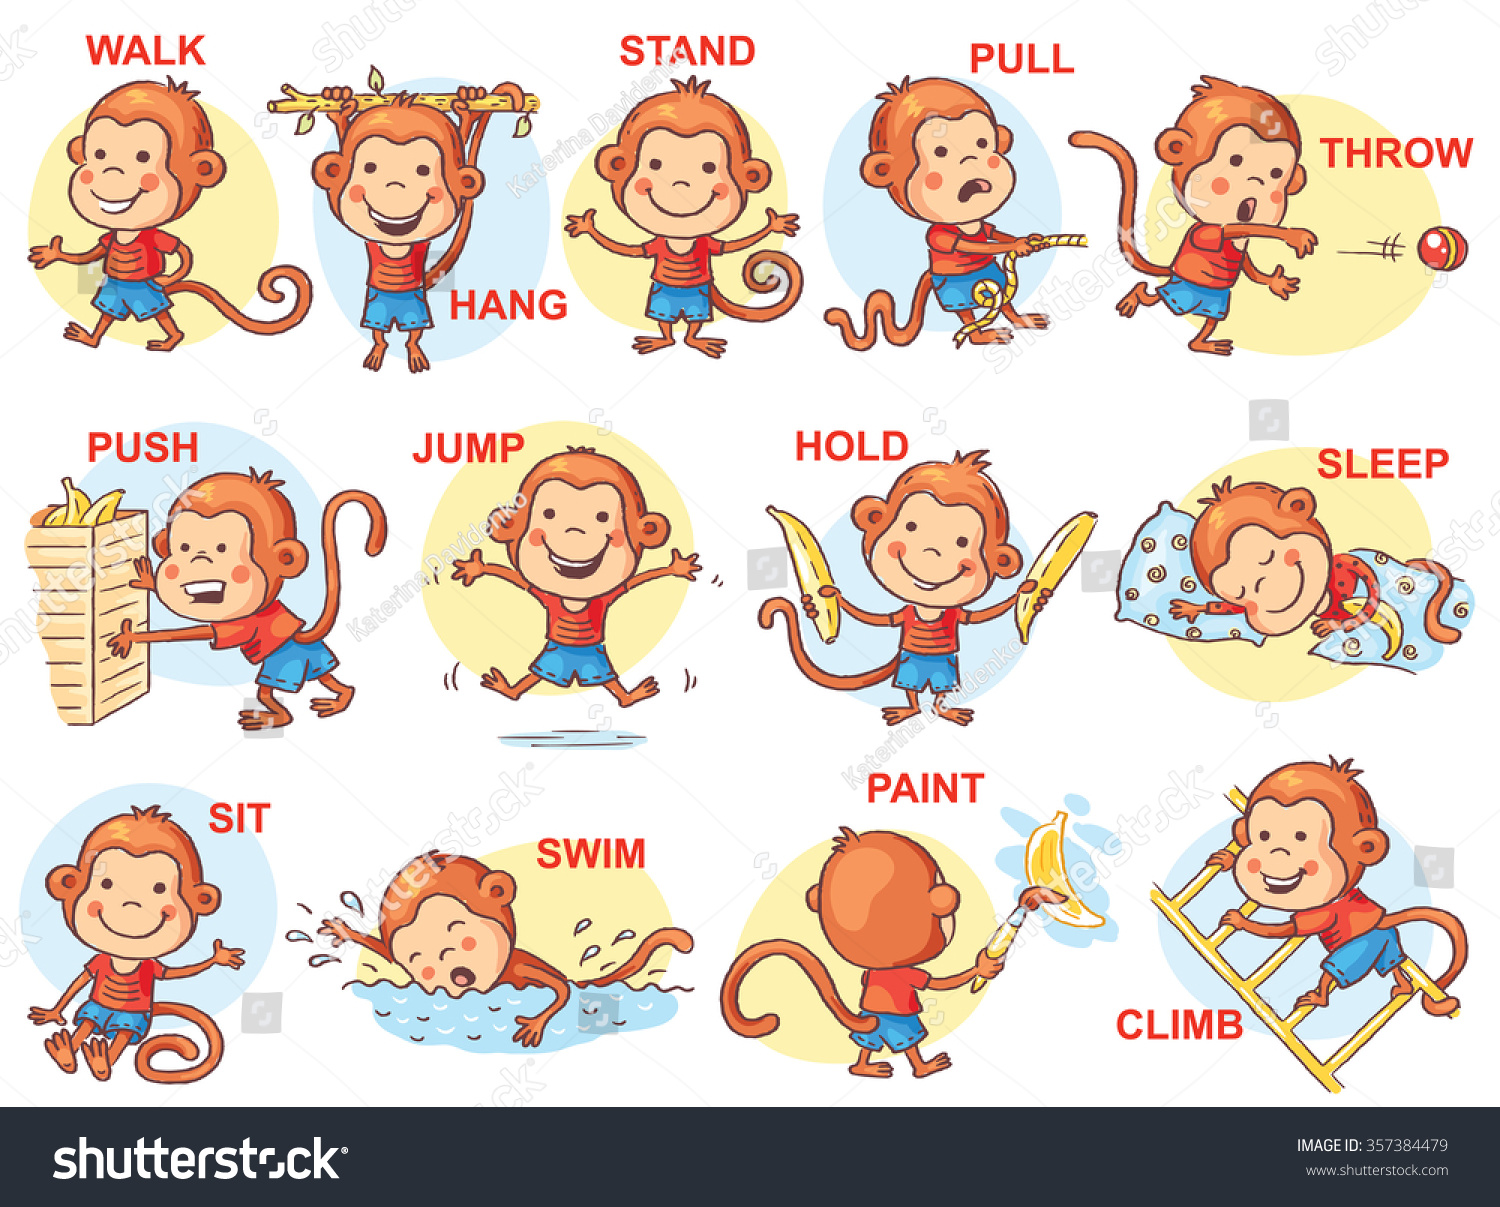 verbs action pictures cute monkey character stock vector  verbs of action in pictures cute monkey character colorful cartoon